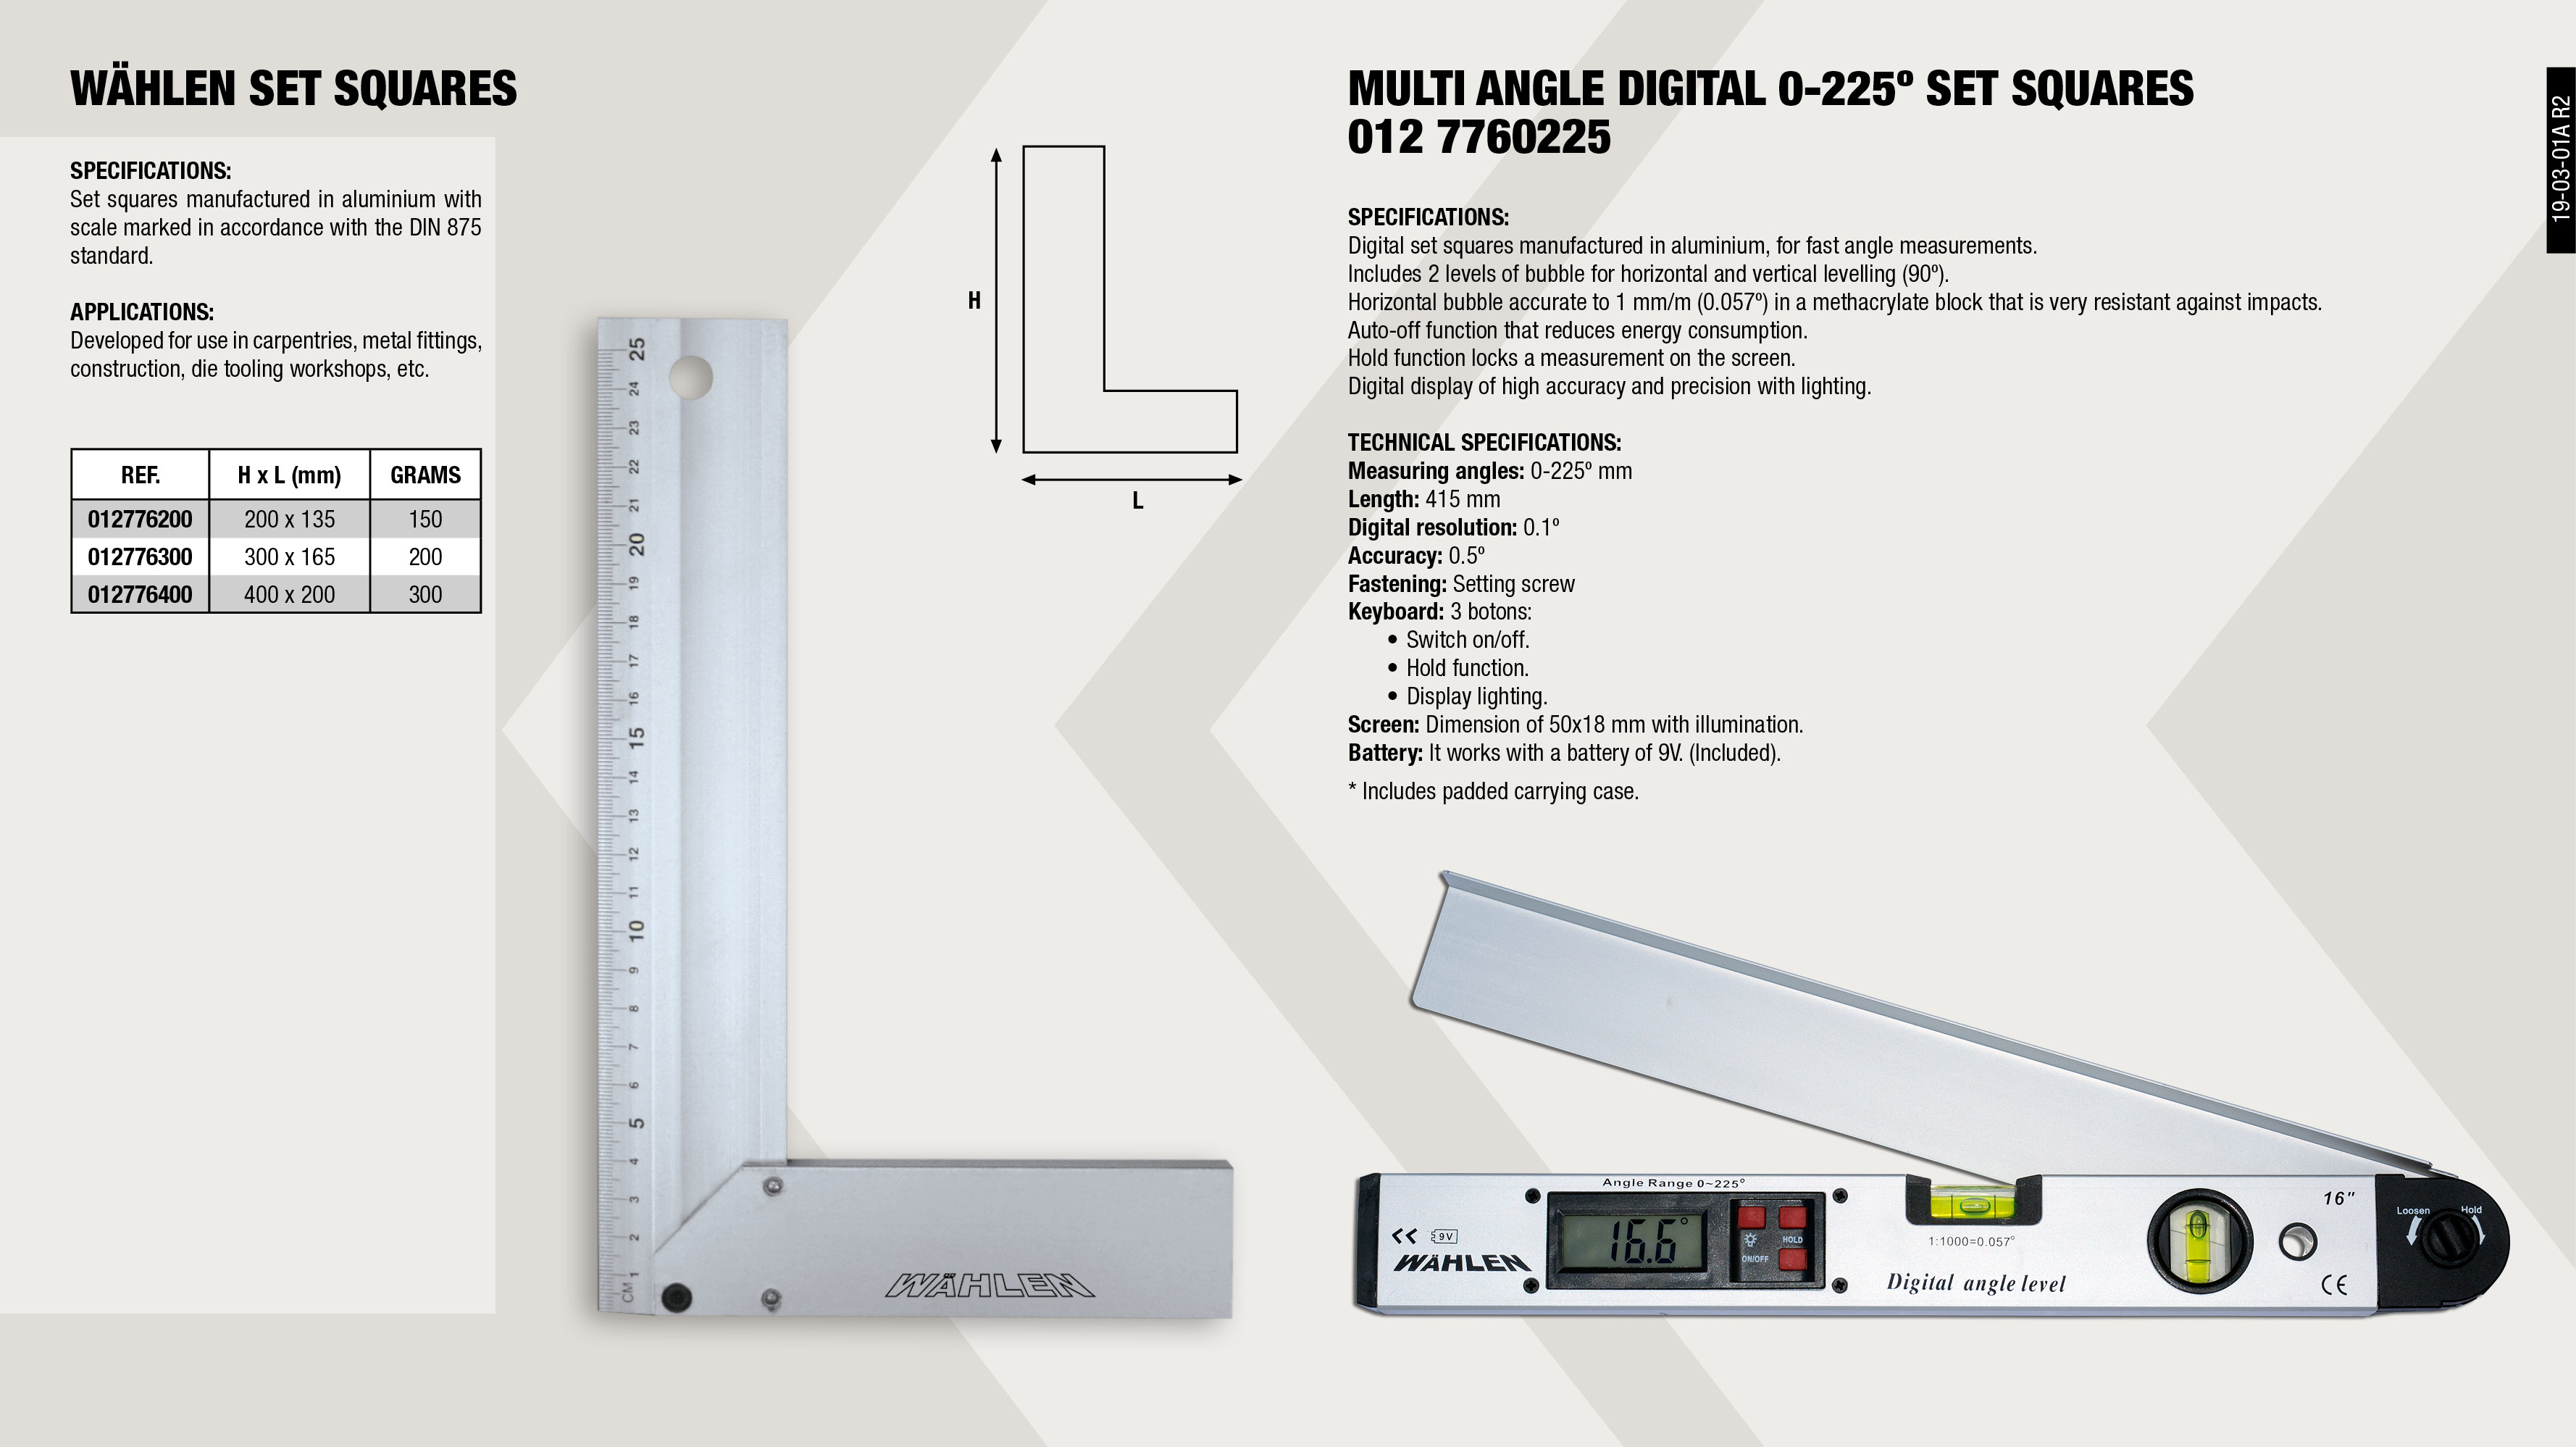 ALUMINIUM SQUARE 400MM                                      ,  									ALUMINIUM SQUARE 200MM                                      ,  									ALUMINIUM SQUARE 300MM                                      ,  									DIGITAL ANGLE LEVEL 0-225º                                  ,